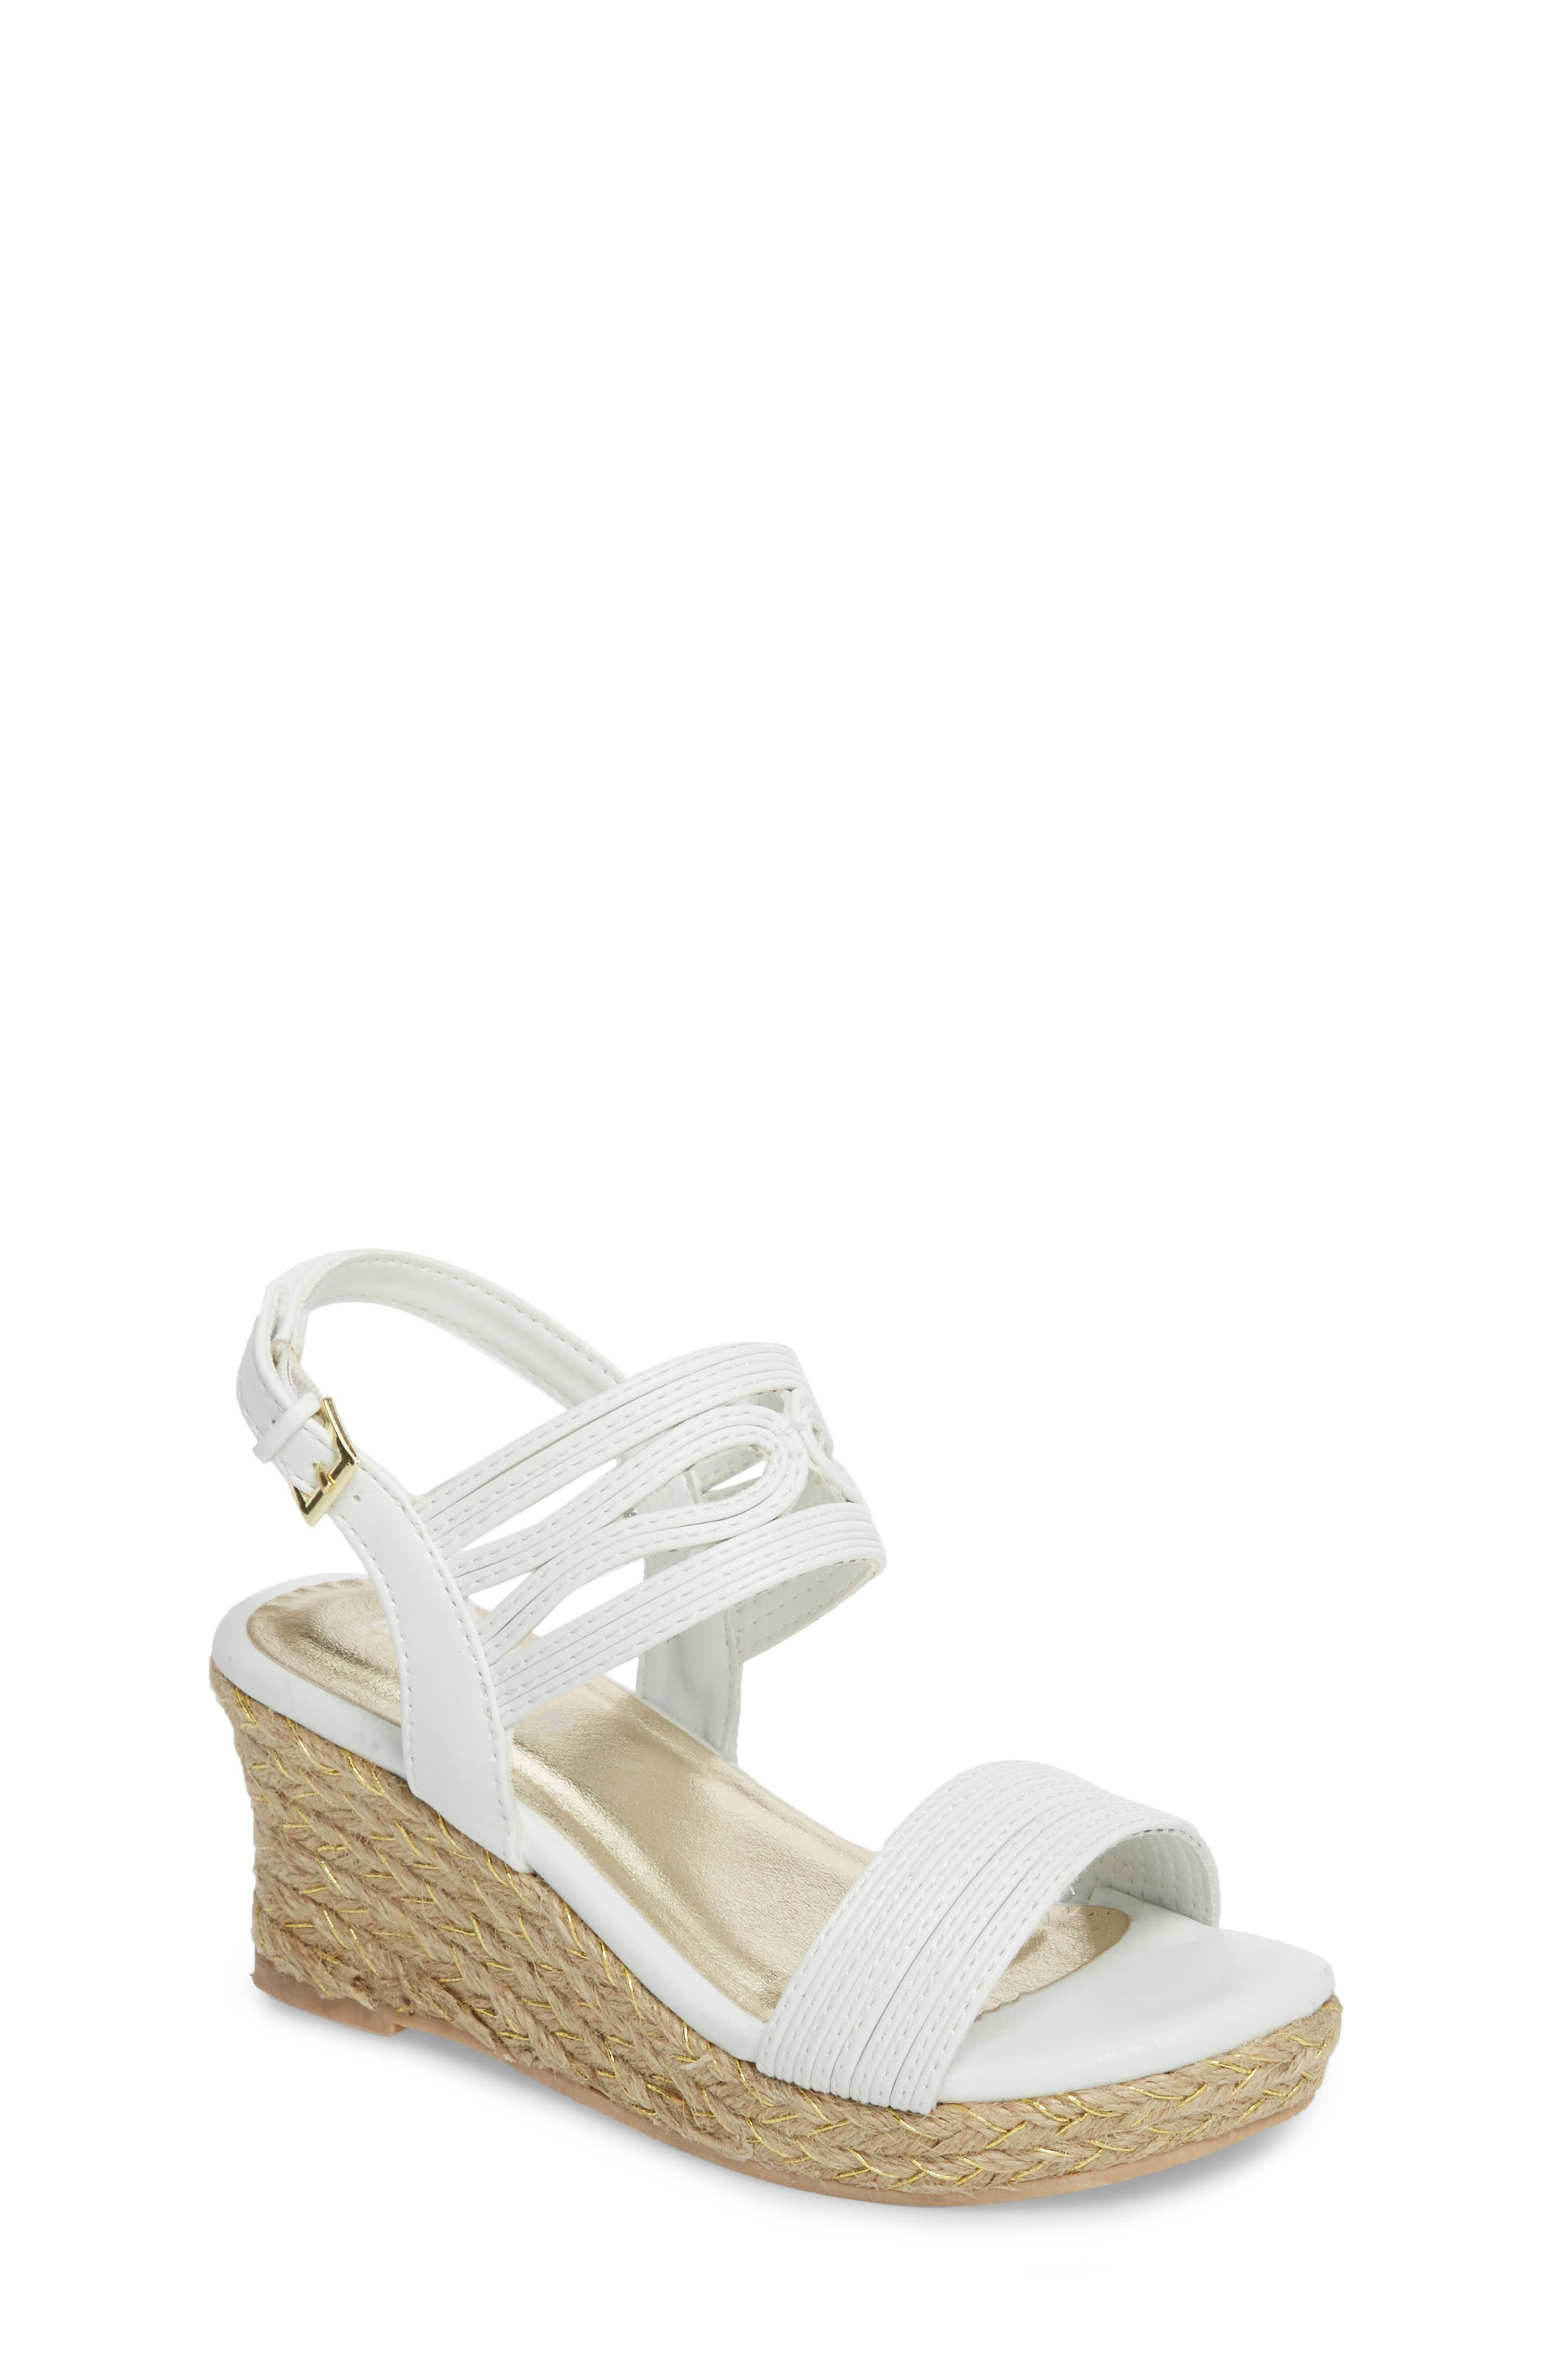 Kenneth Cole New York Reed Day Wedge Sandal (Toddler, Little Kid & Big Kid)